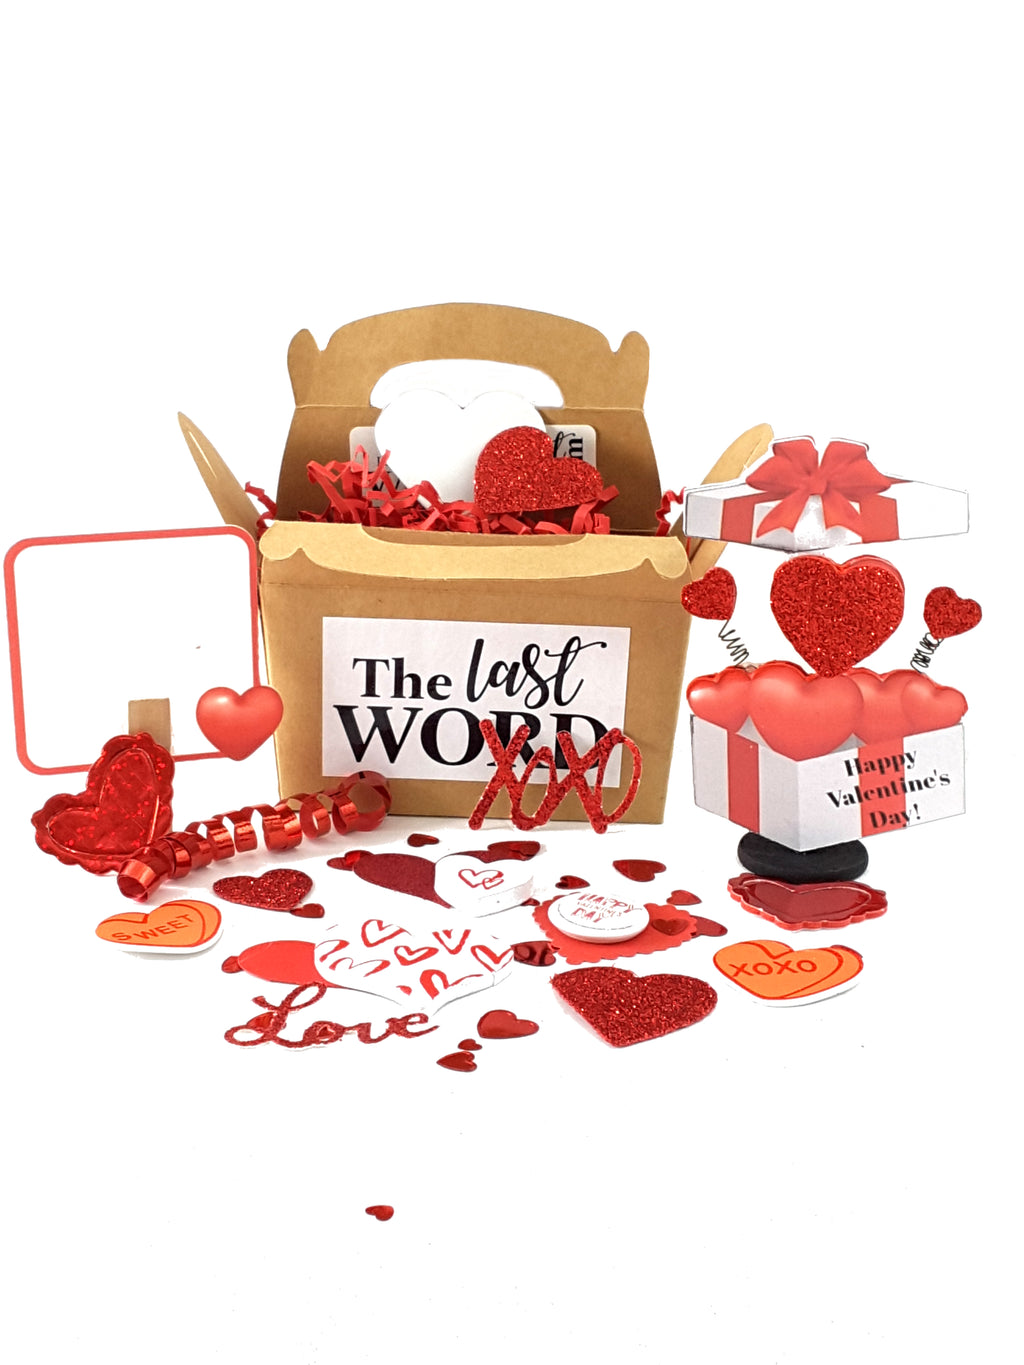 Valentine's Day 3D Card with Box of Hearts - TheLastWordBish.com